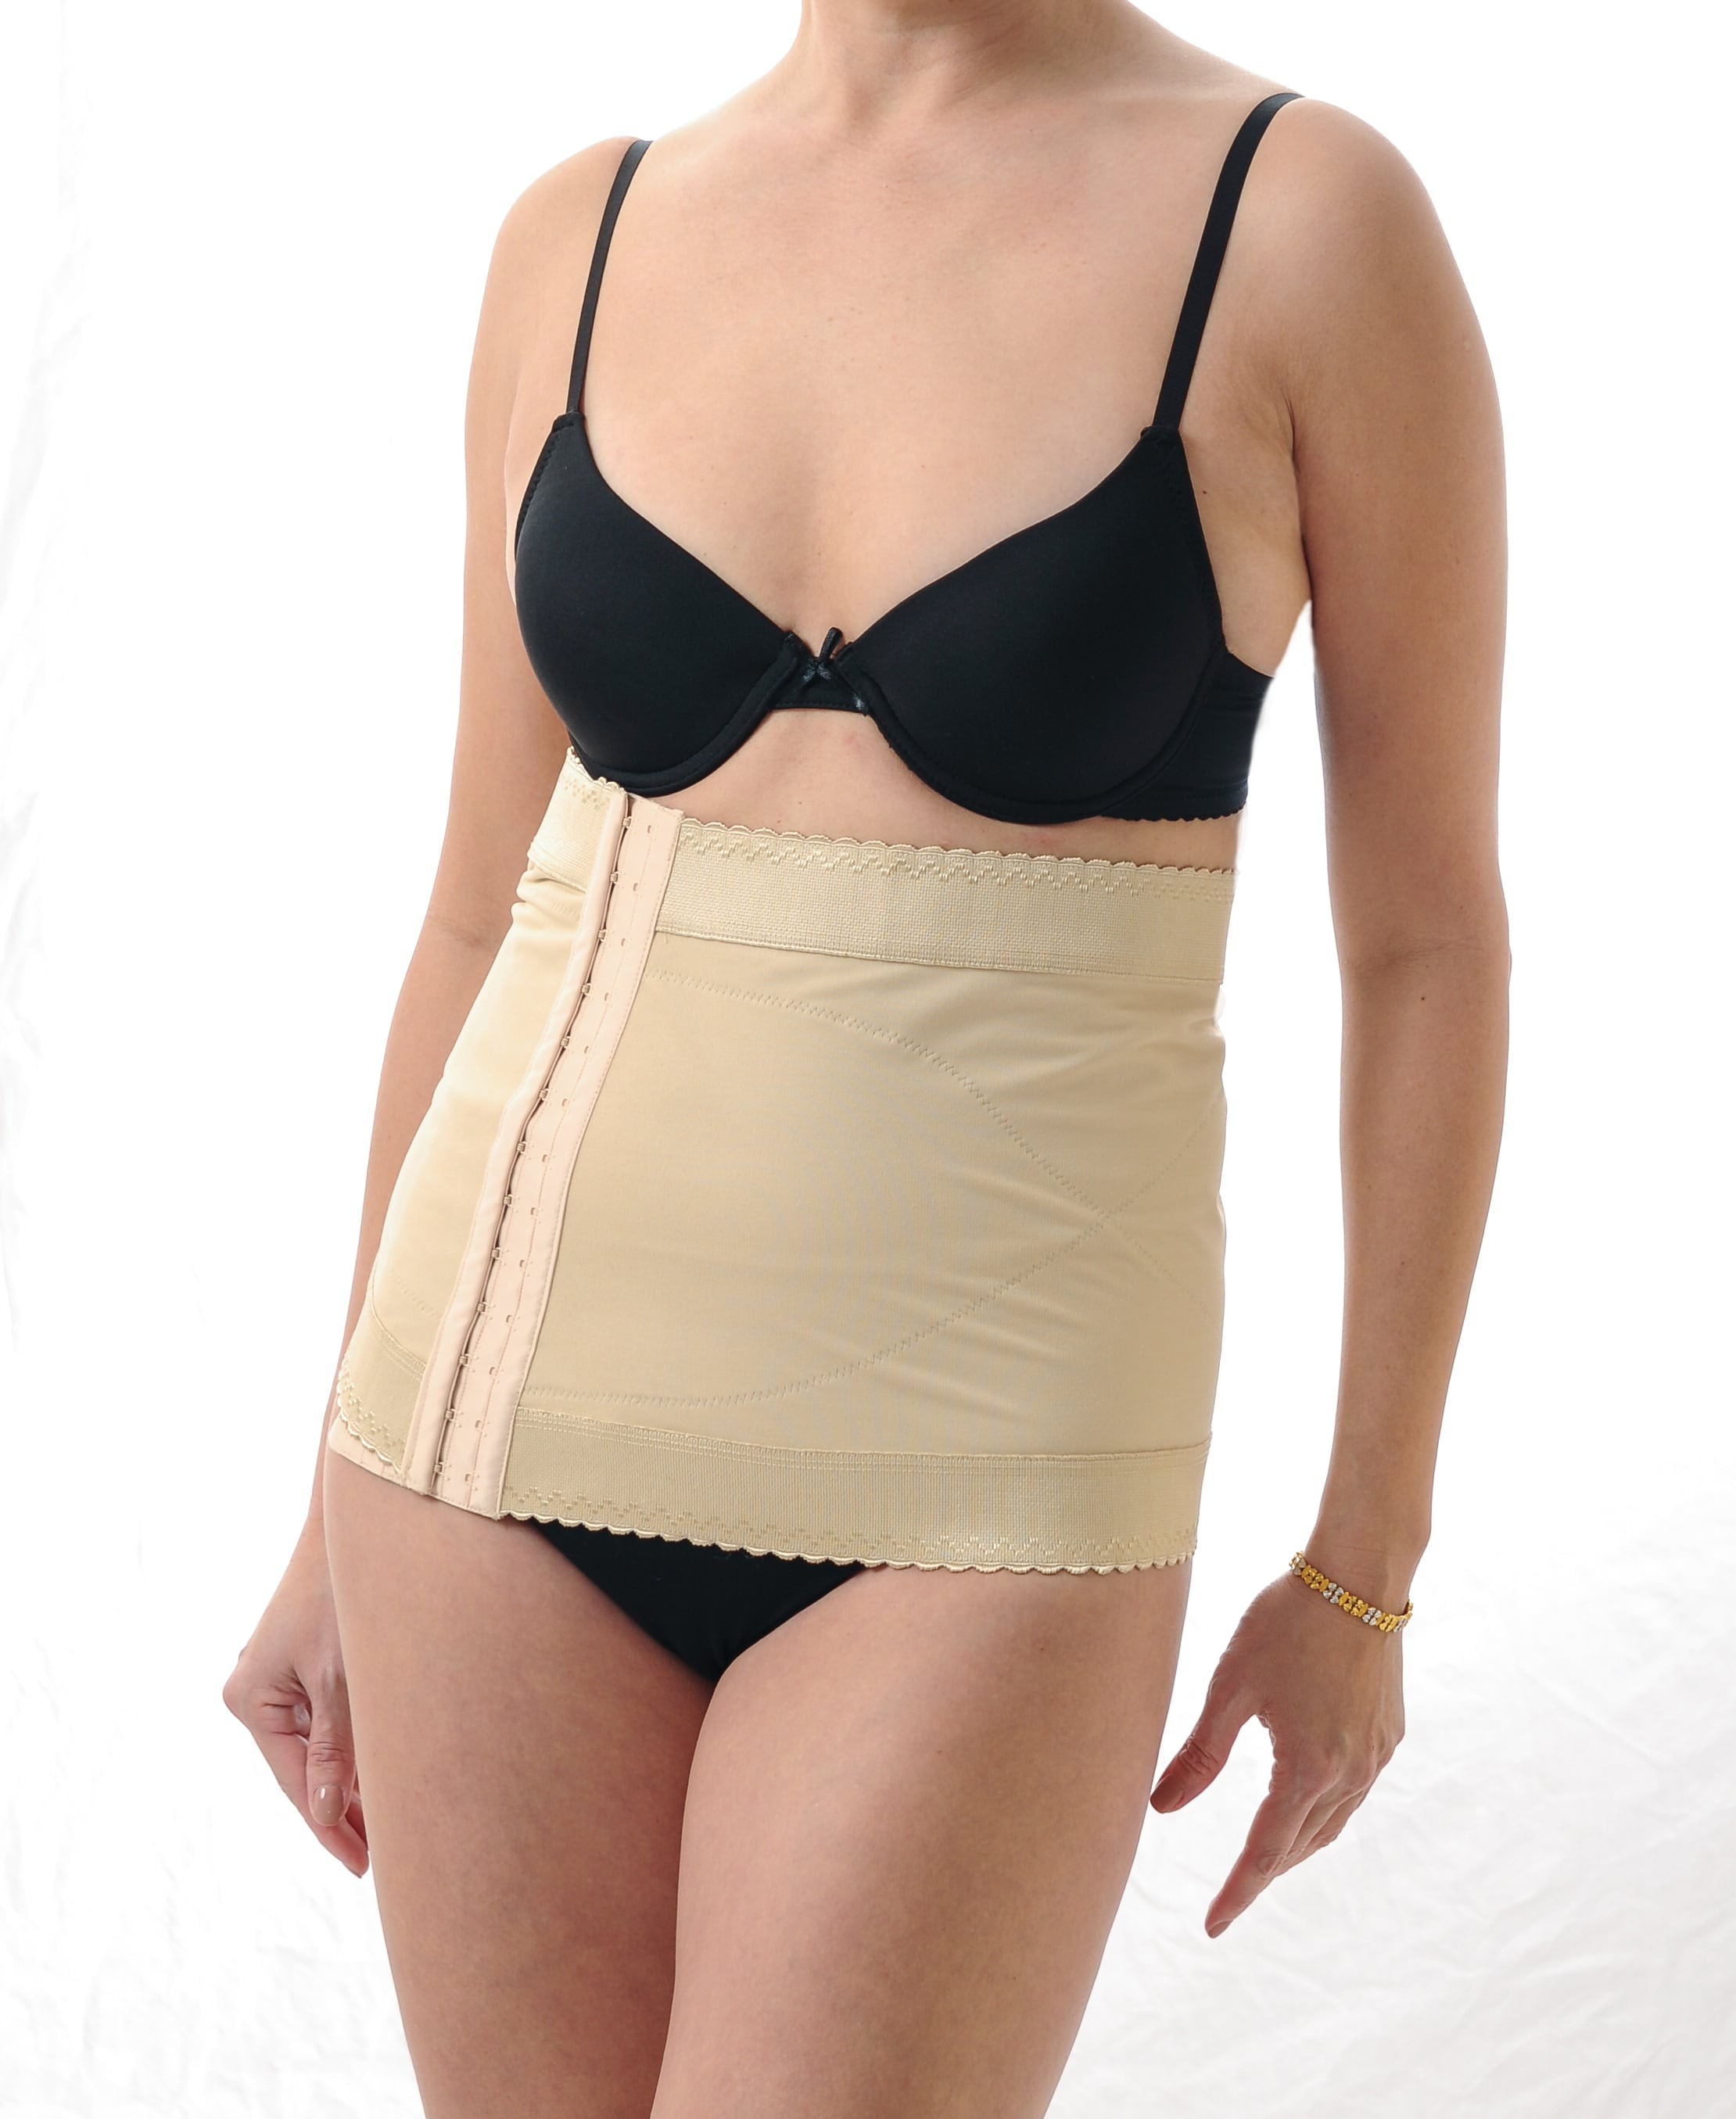 Envy Her Postpartum Belly & Hip Shaper Recovery Bi